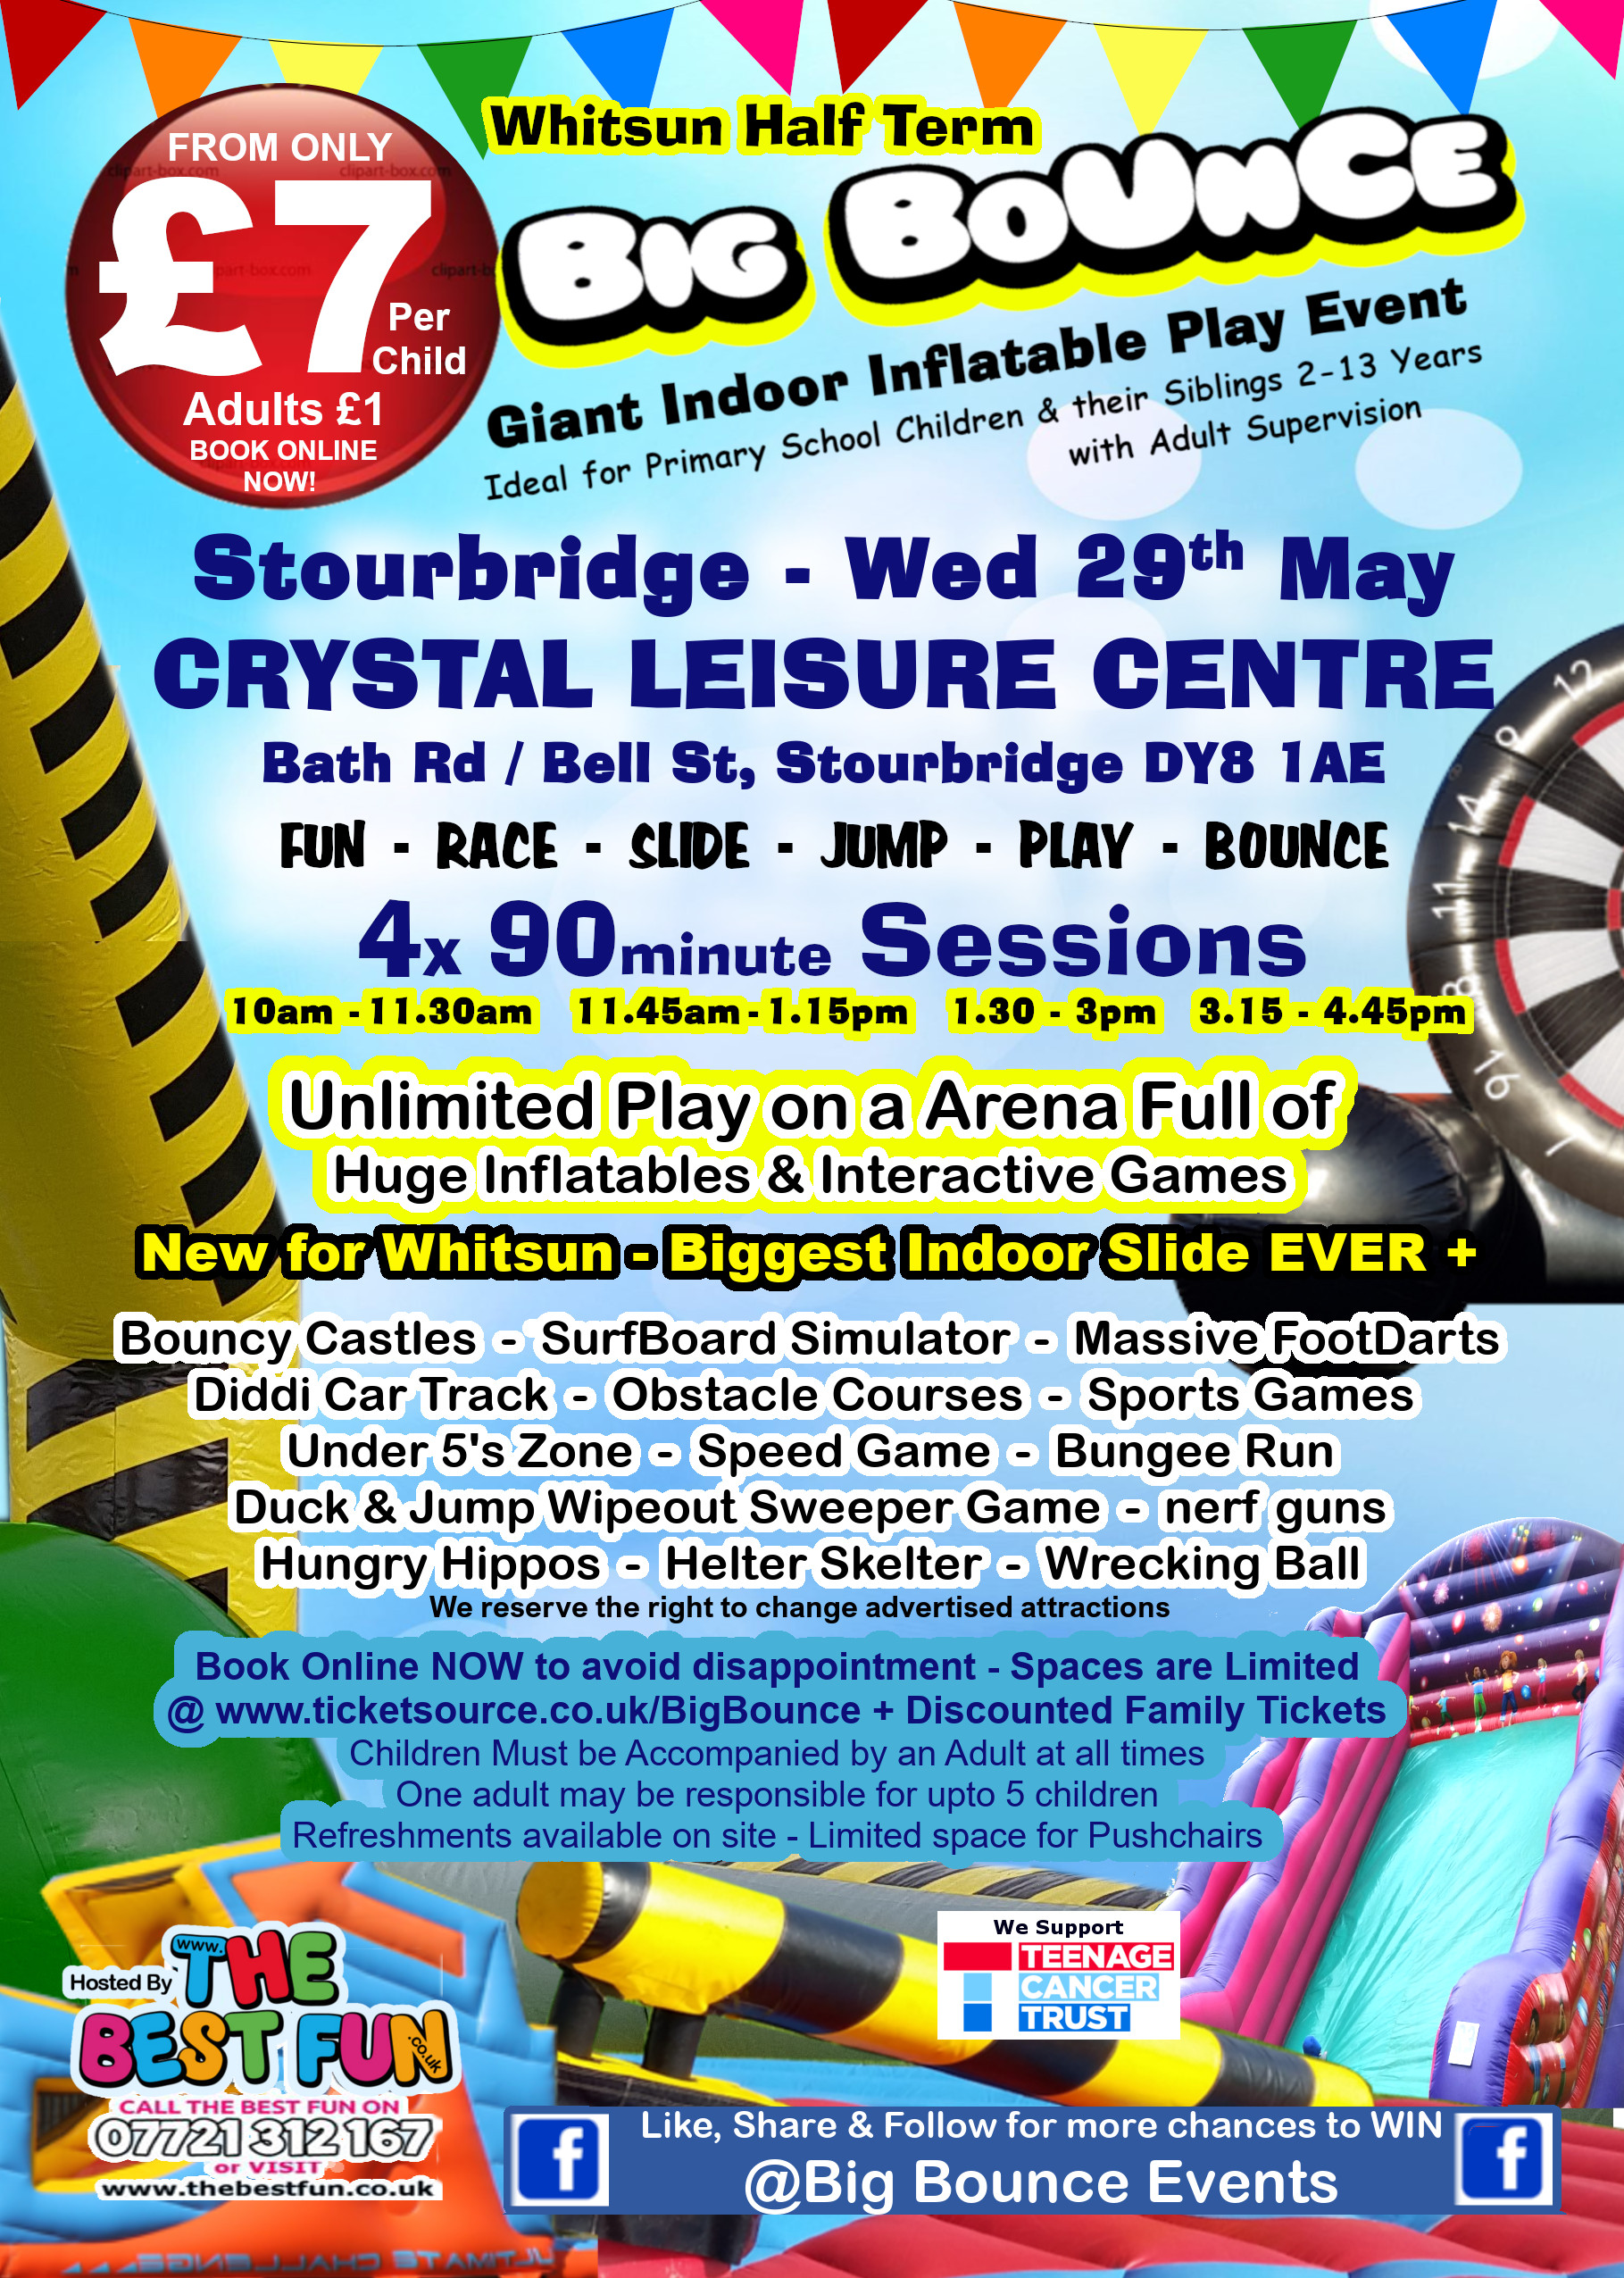 Stourbridge Whitsun Big Bounce